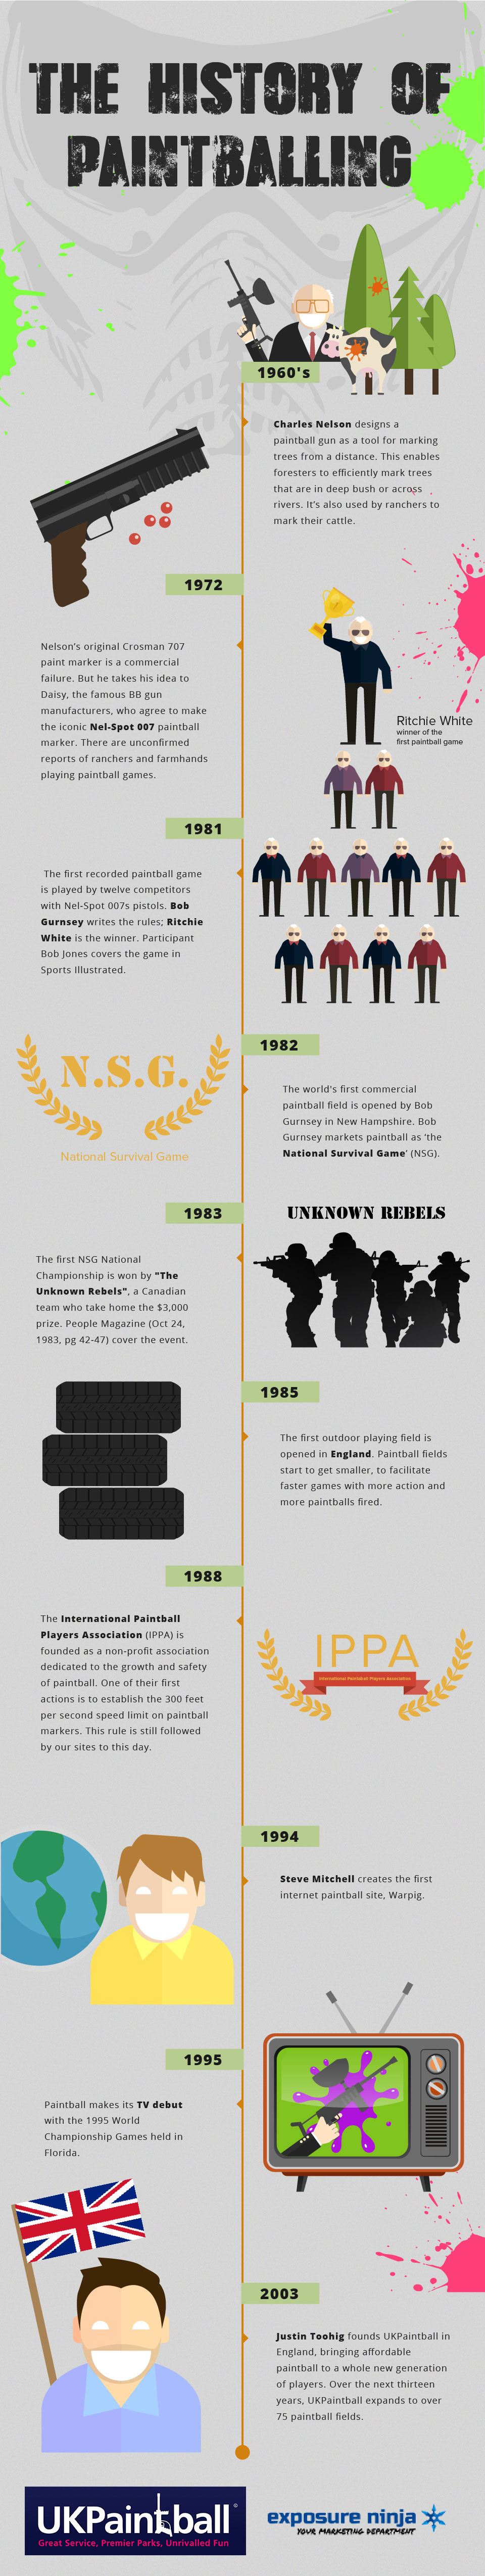 The History of Paintballing